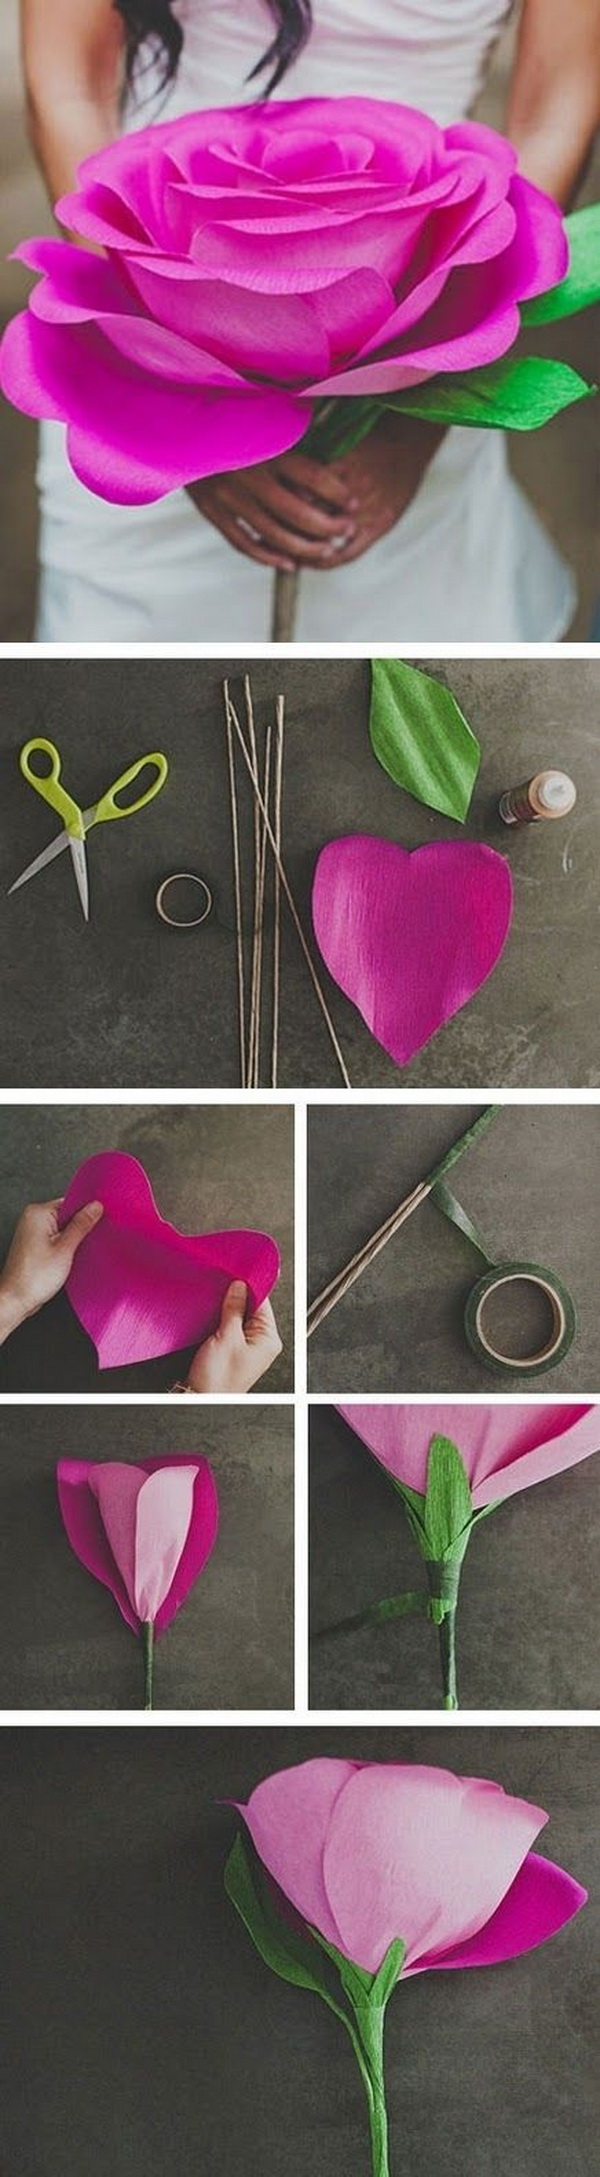 DIY Giant Paper Rose Flower. Every mom would love this beautiful gift!